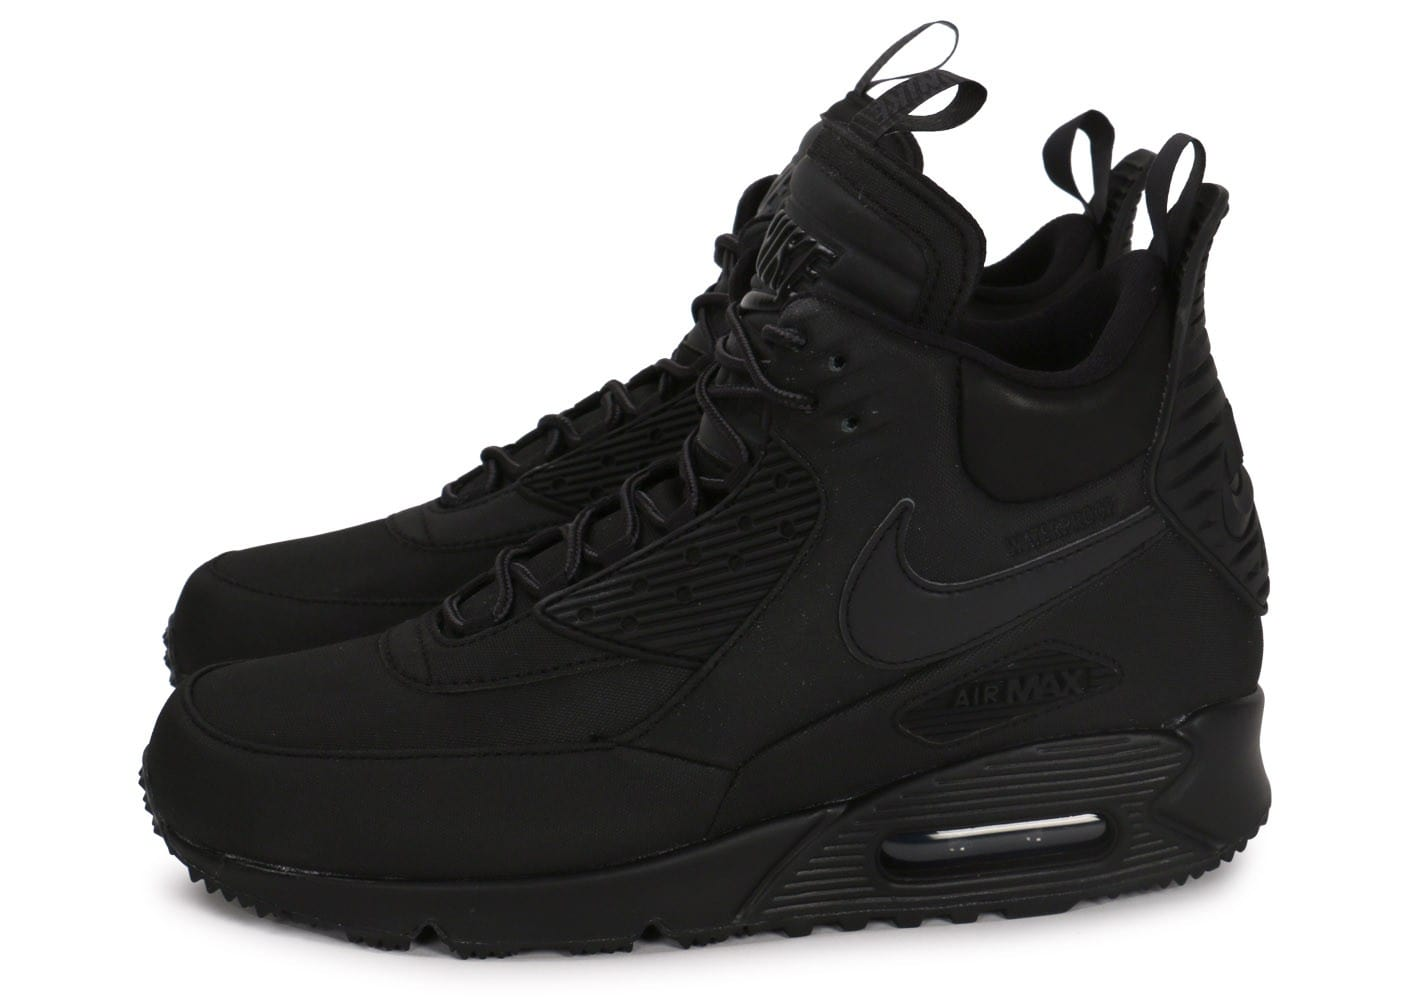 la meilleure attitude 238f8 db802 Nike Air Max 90 Sneakerboot Winter noir - Chaussures Baskets ...